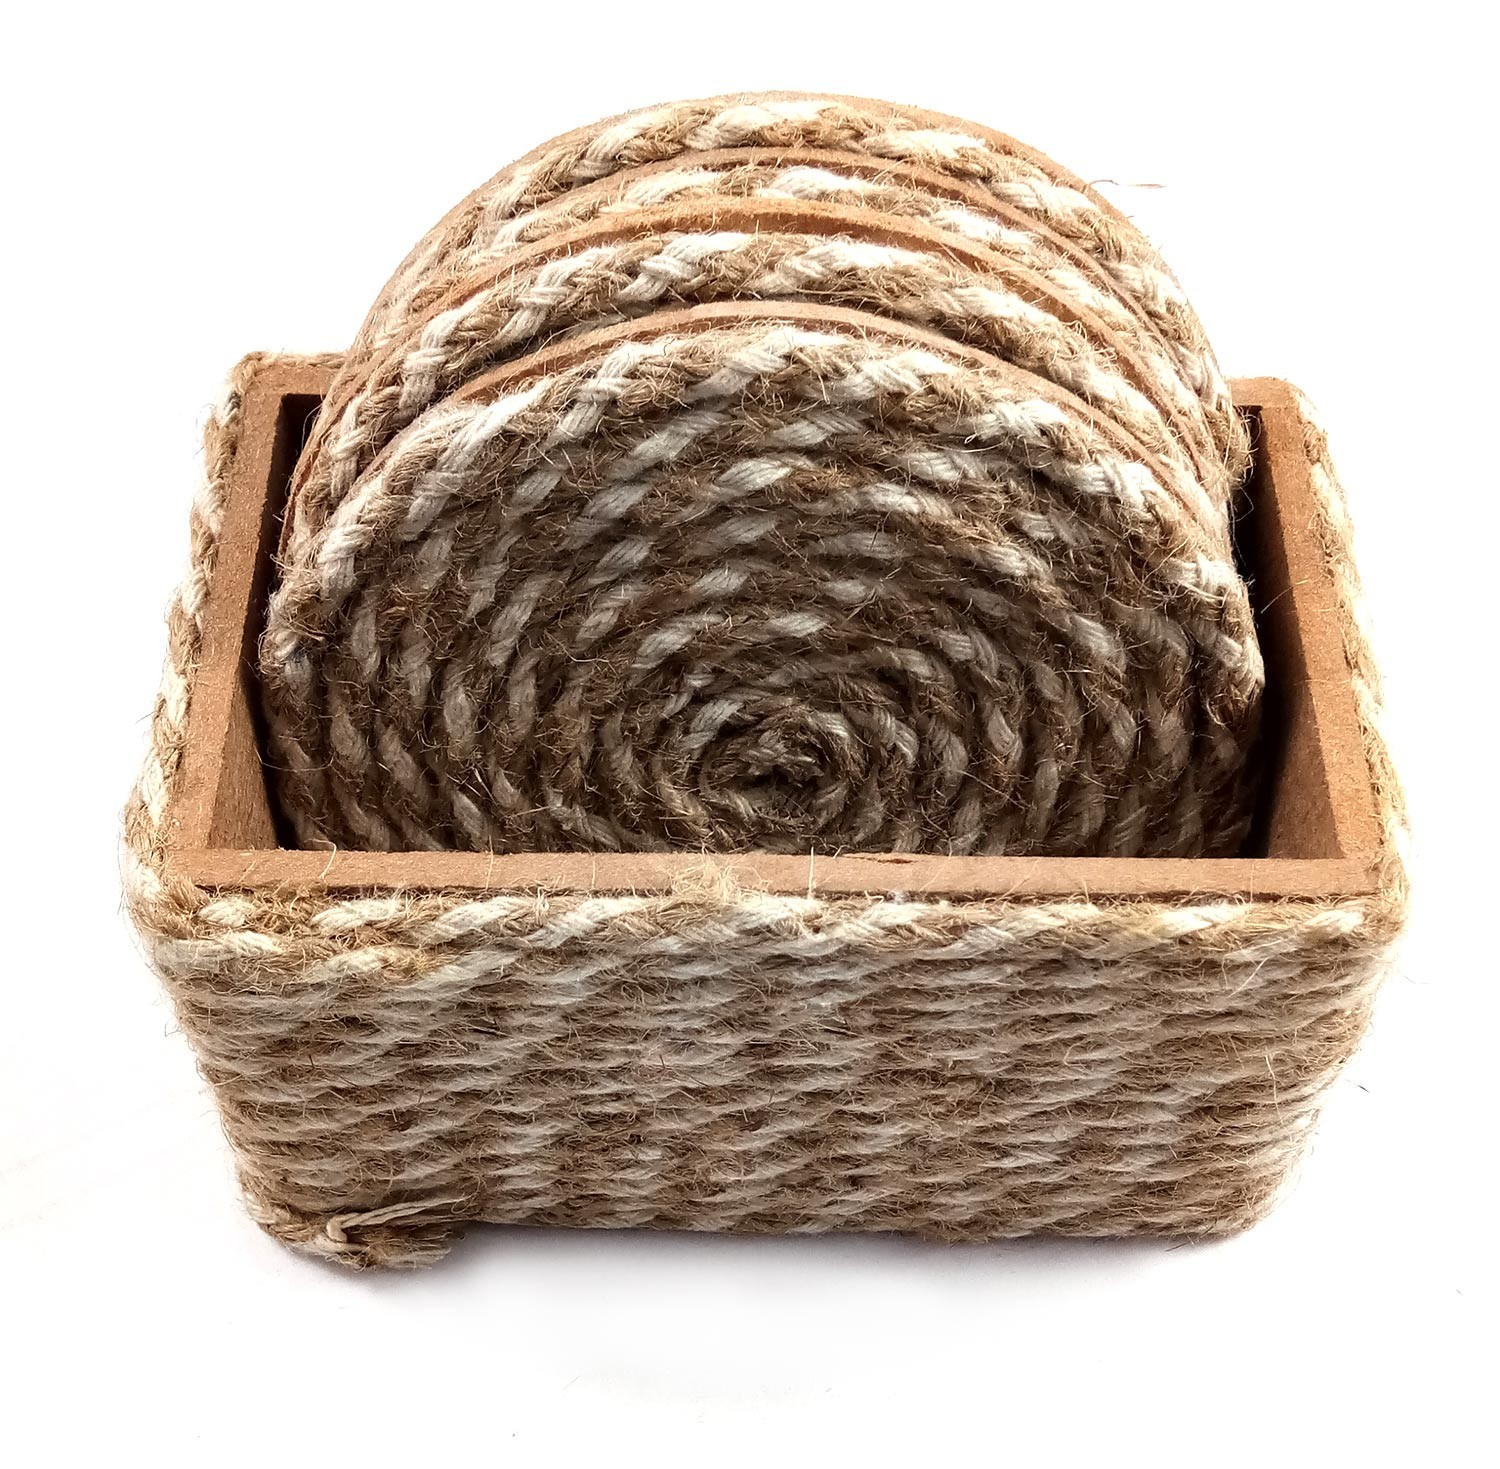 Brown Jute Rope Coaster Set of 4 by person with disability